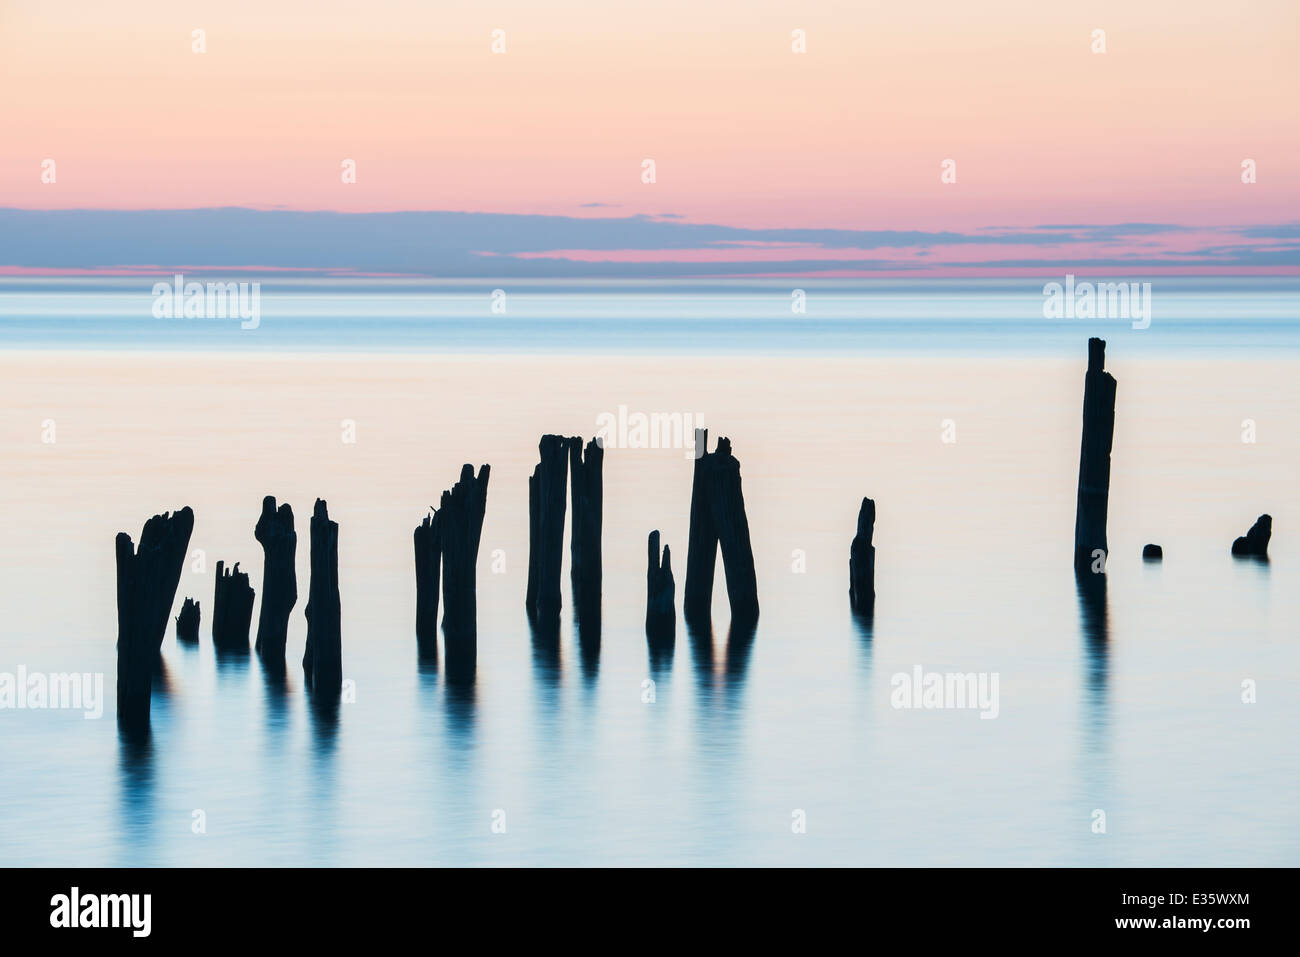 Shadowy figures, remnants of dock pilings hold steady in the Great Lake of Lake Huron, Michigan, USA. - Stock Image